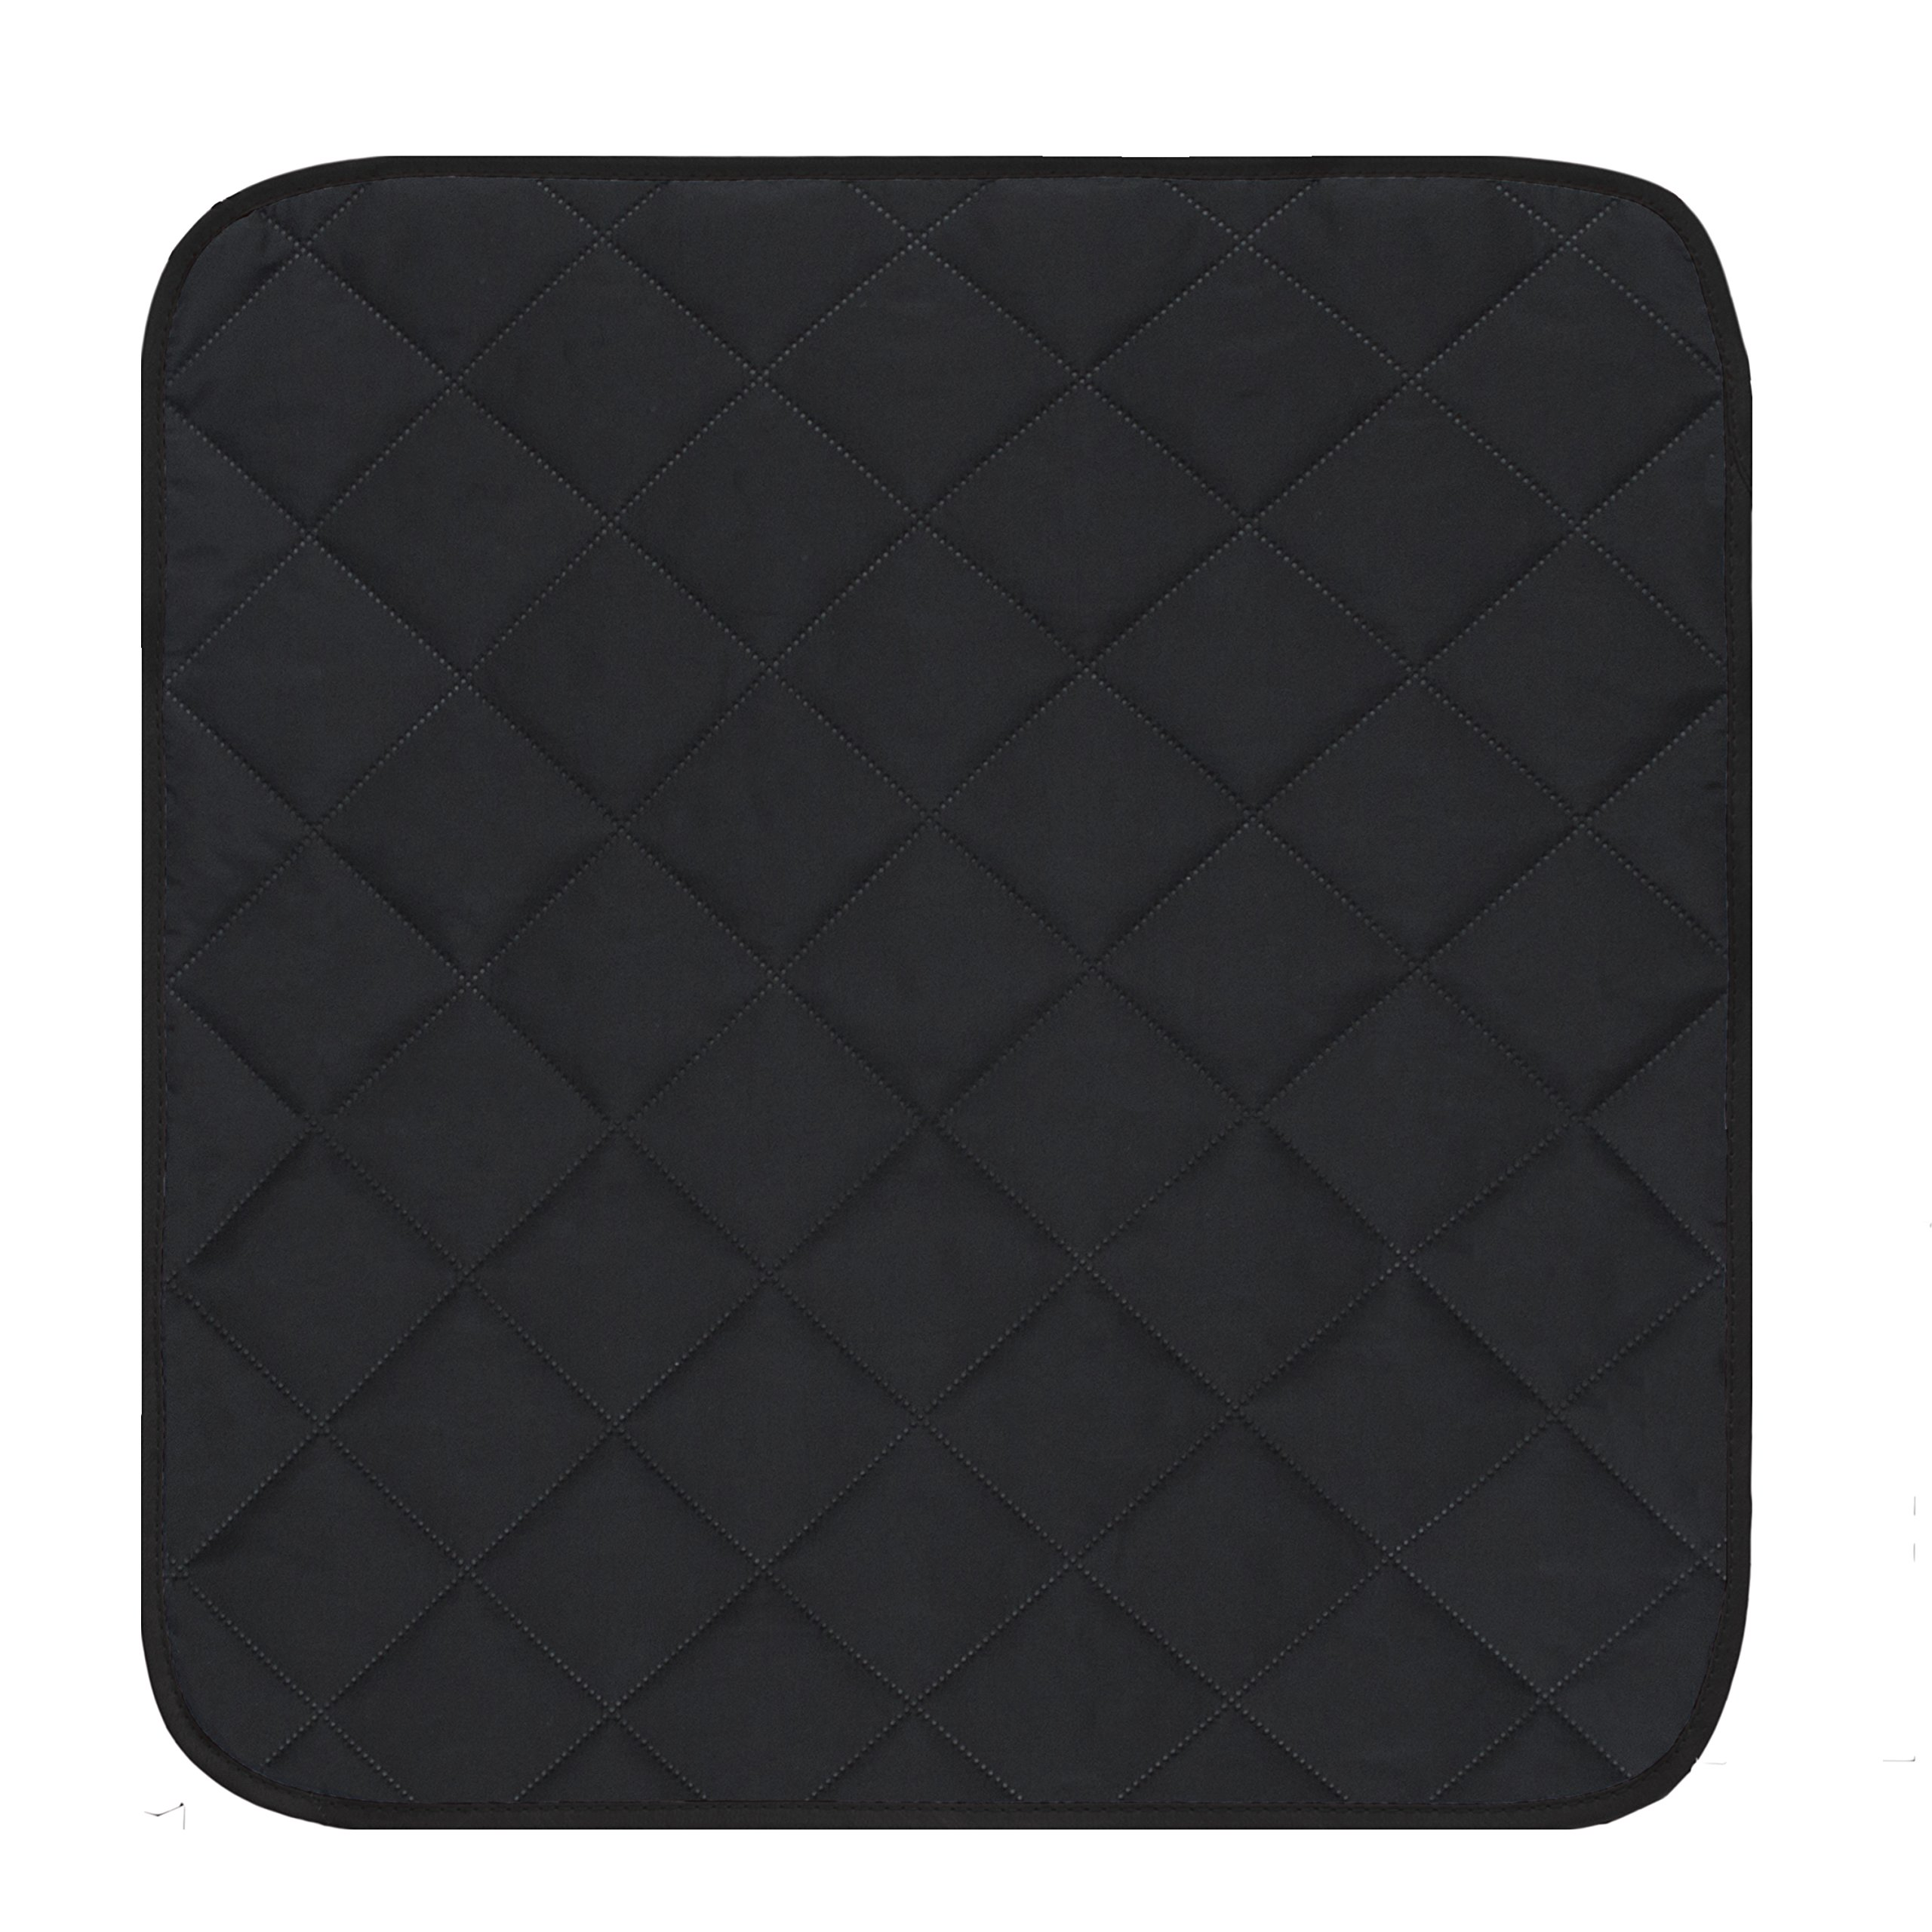 Mydays Chair Seat Protector Pad Absorbent Washable Reusable Incontinence Dining Chair Cover Mat Seat Cushion (Black, 2122) by Mydays